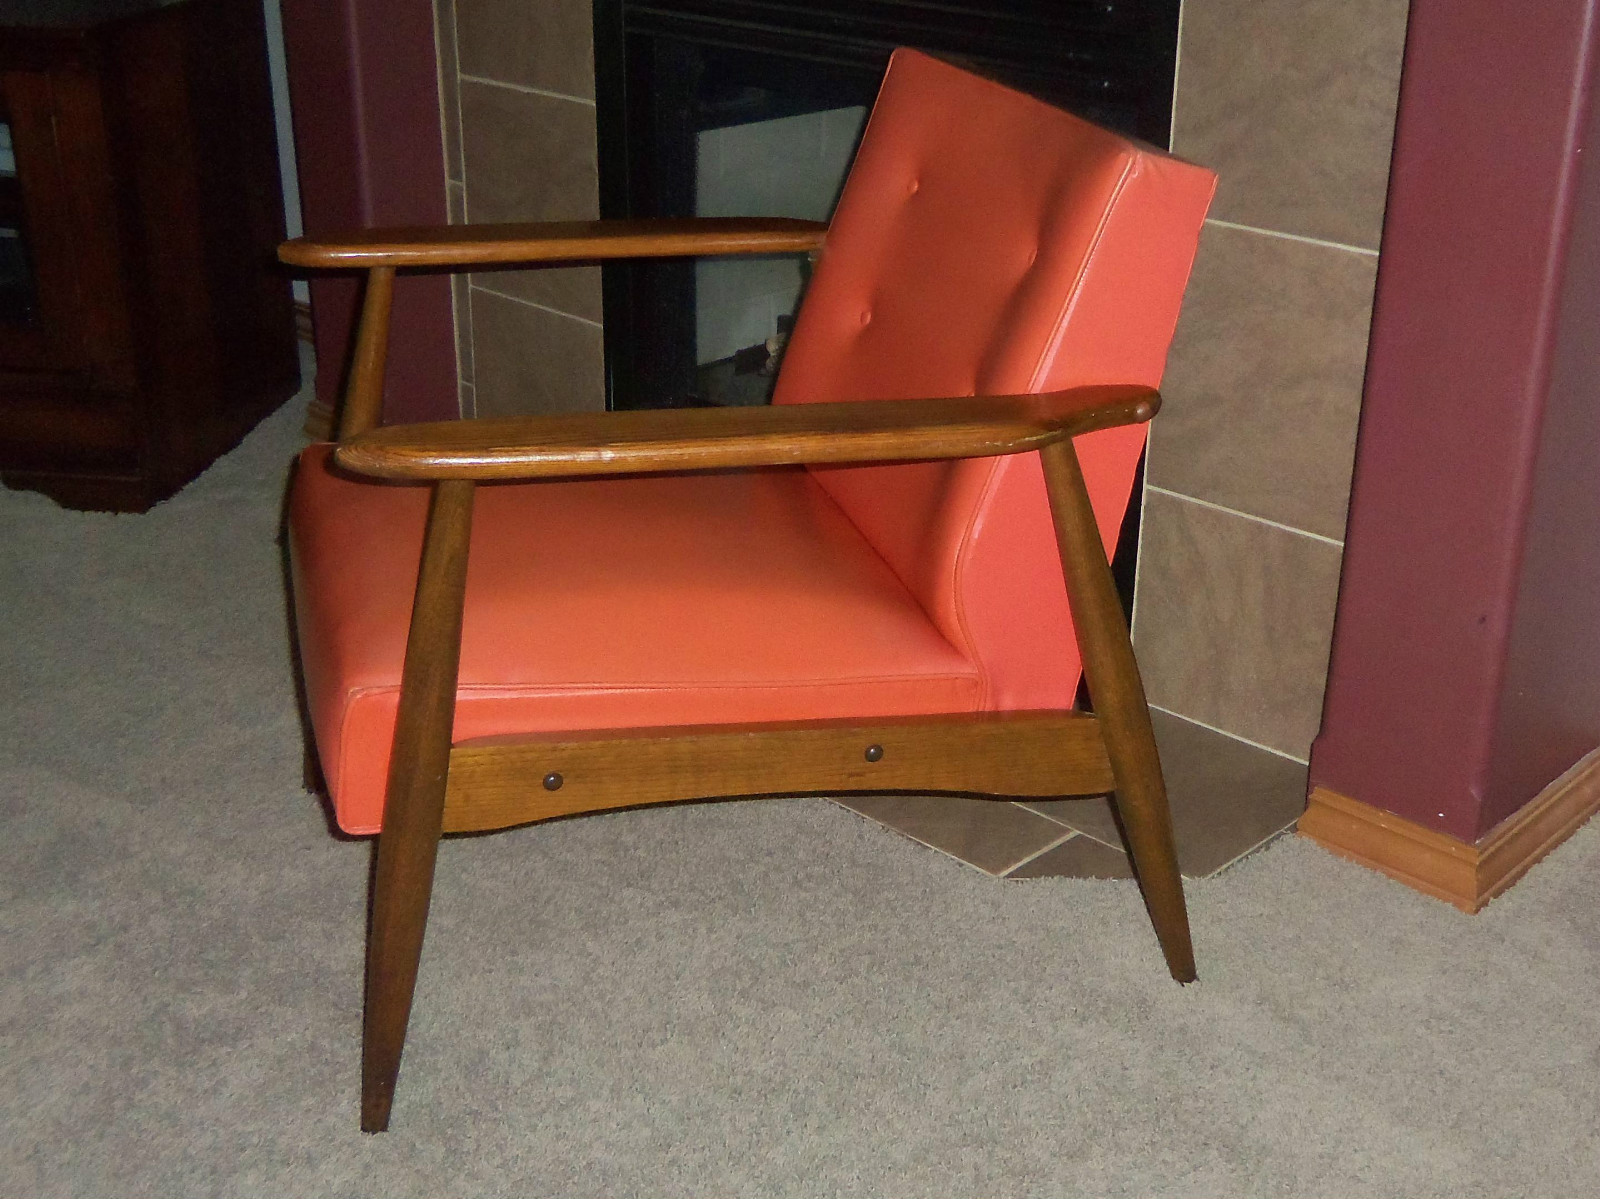 here is a vintage retro mid century danish modern lounge arm chair